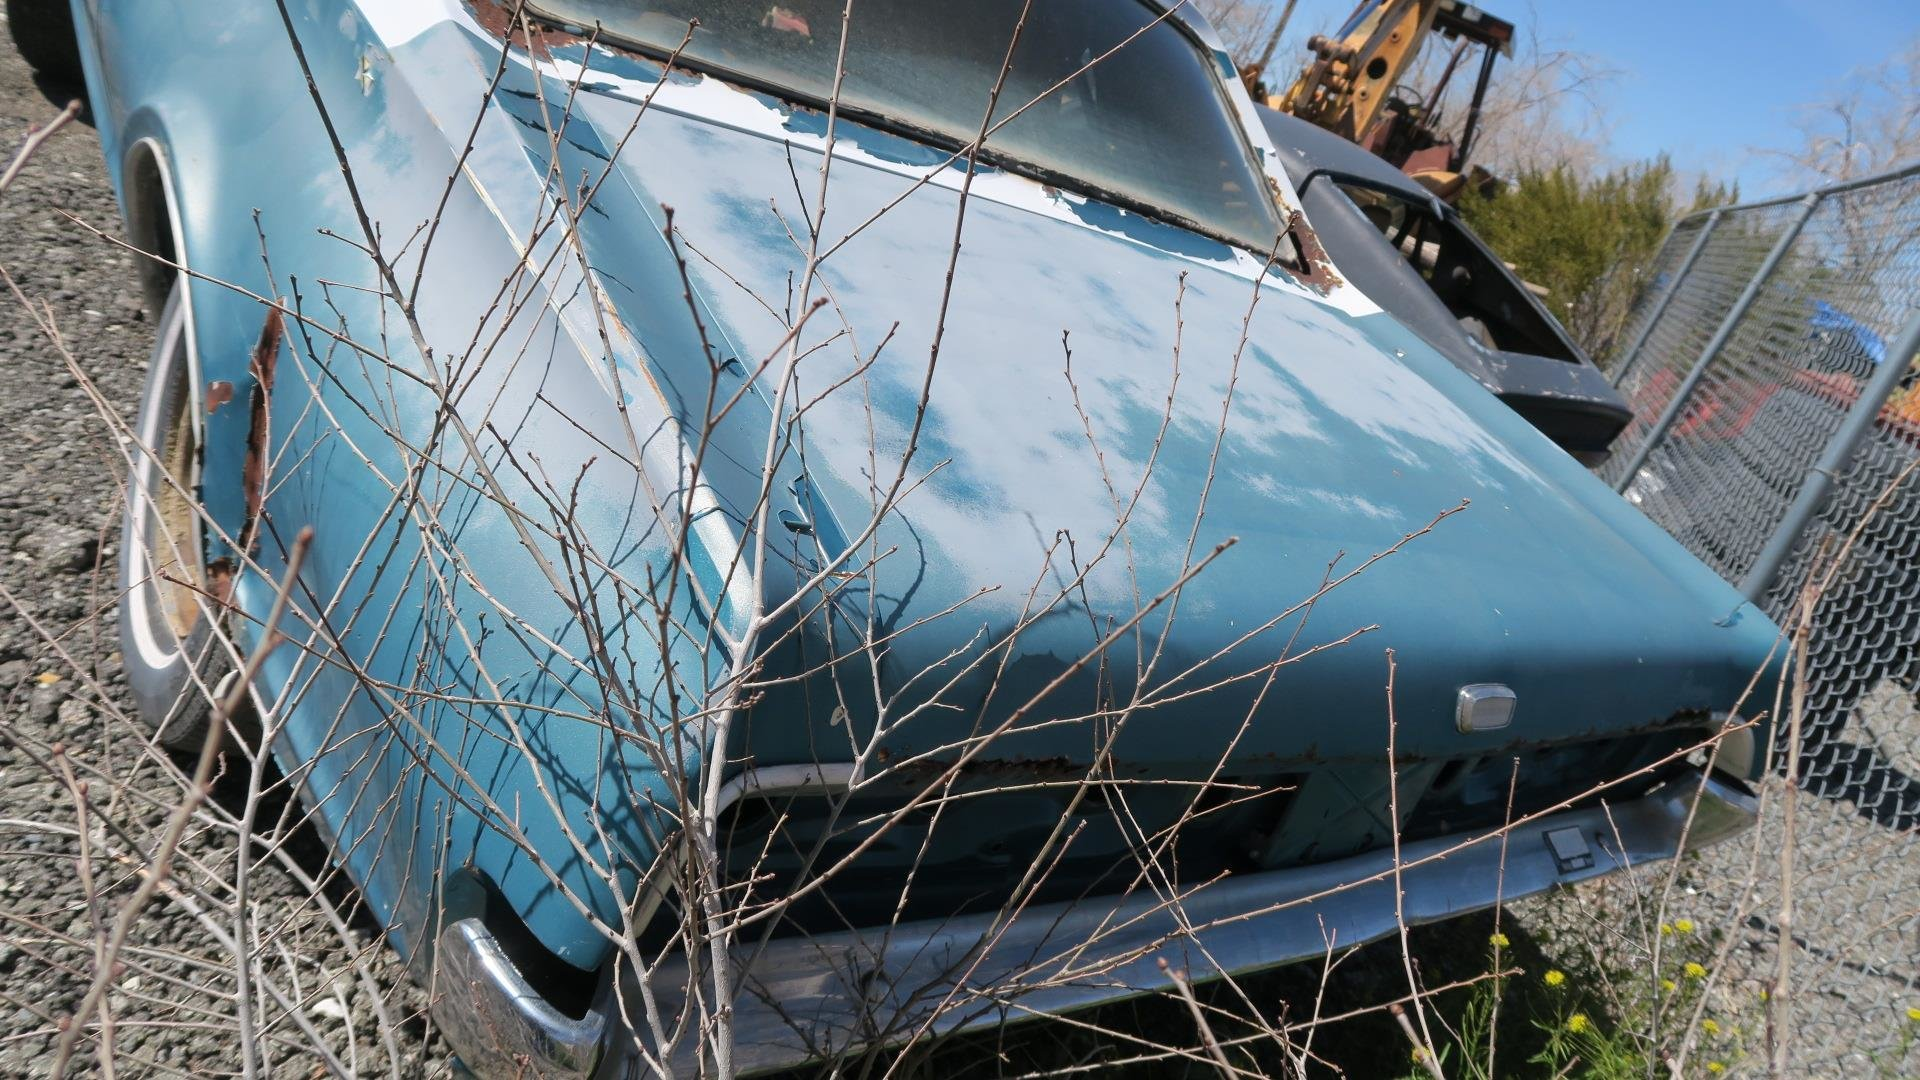 1967 Mercury Cougar 289 C Code Auto Project Blue  $1.9k For Sale (picture 3 of 6)